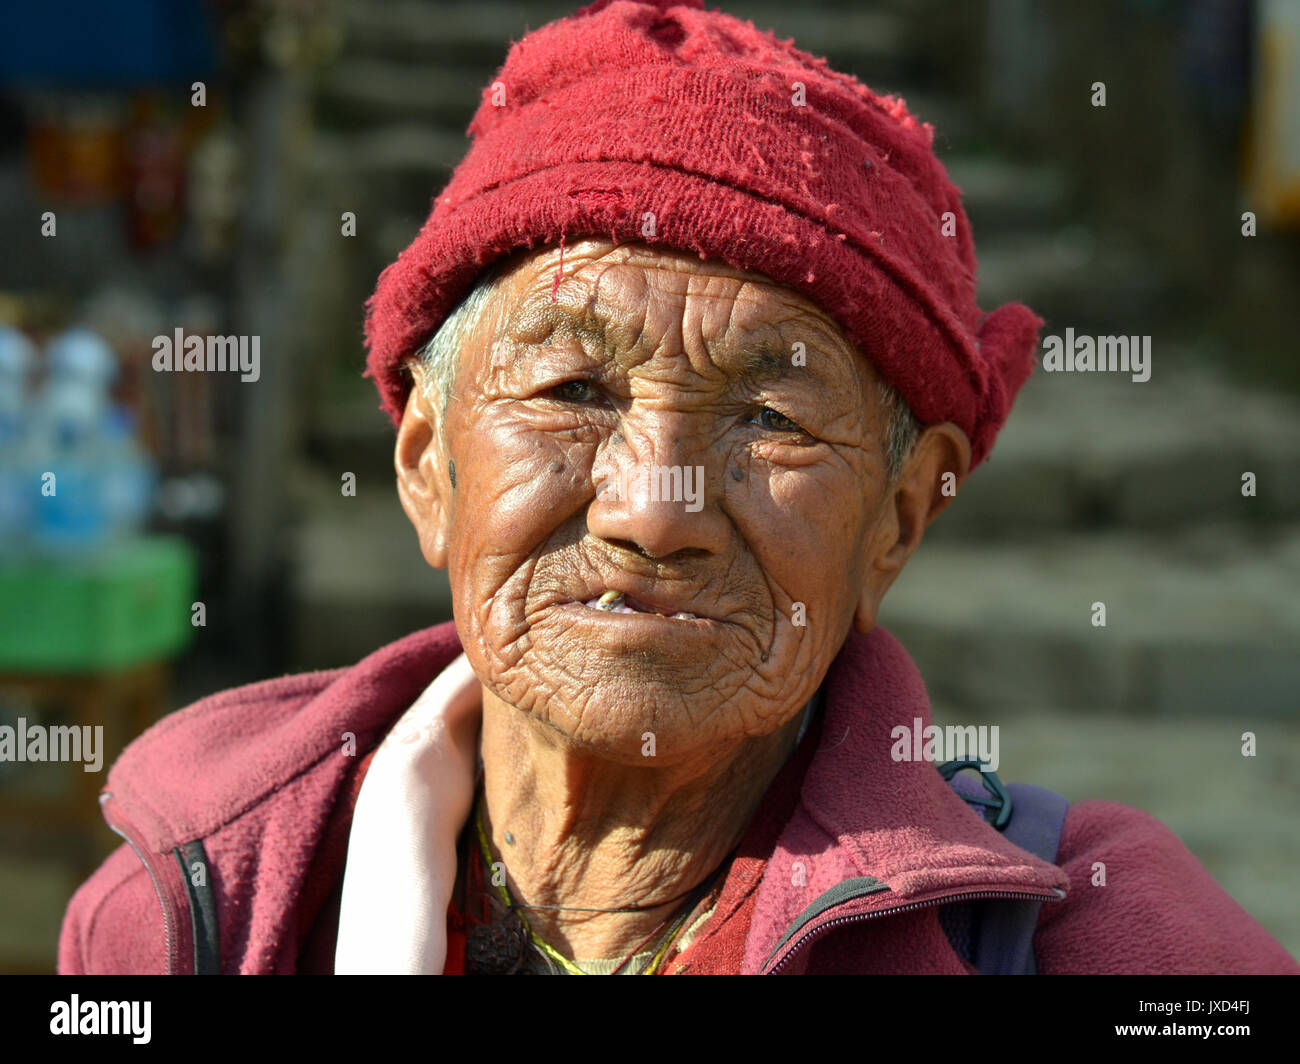 Closeup street portrait (outdoor headshot, full-face view) of an old Tibetan Buddhist nun from the Himalayas; Namche - Stock Image